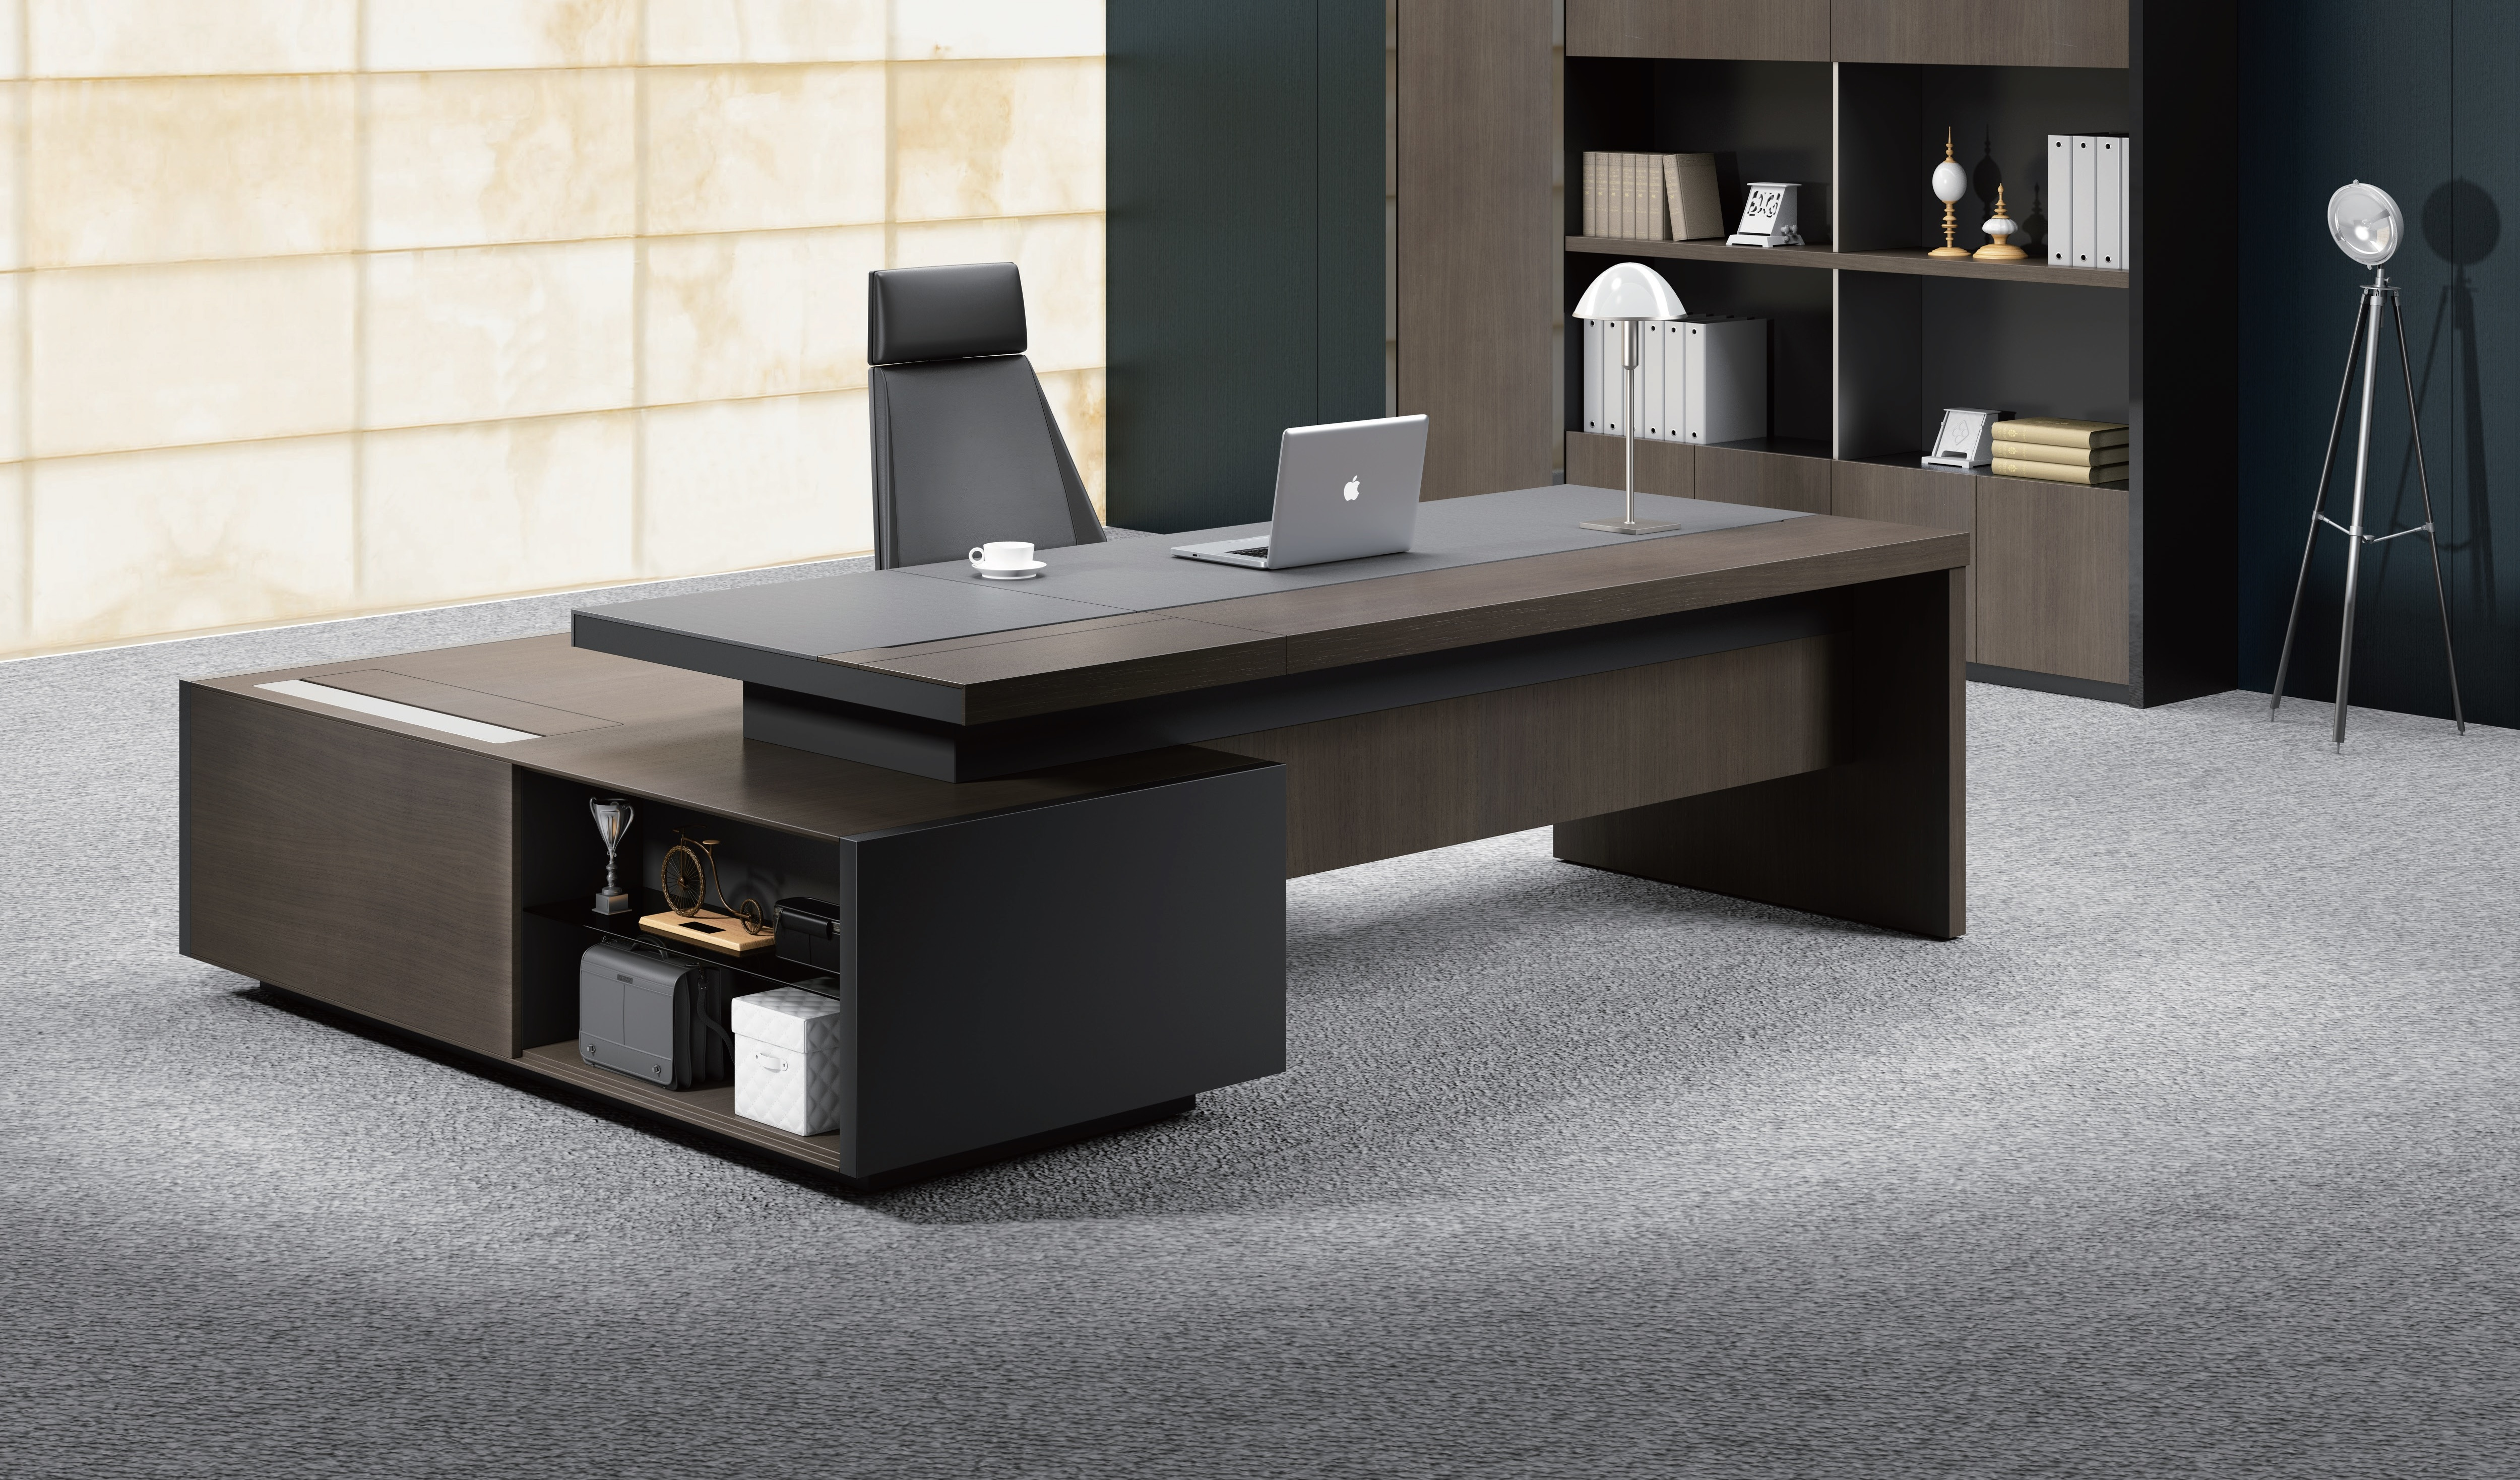 office table 1-ey-87 2.6 -1 KVVXPZI